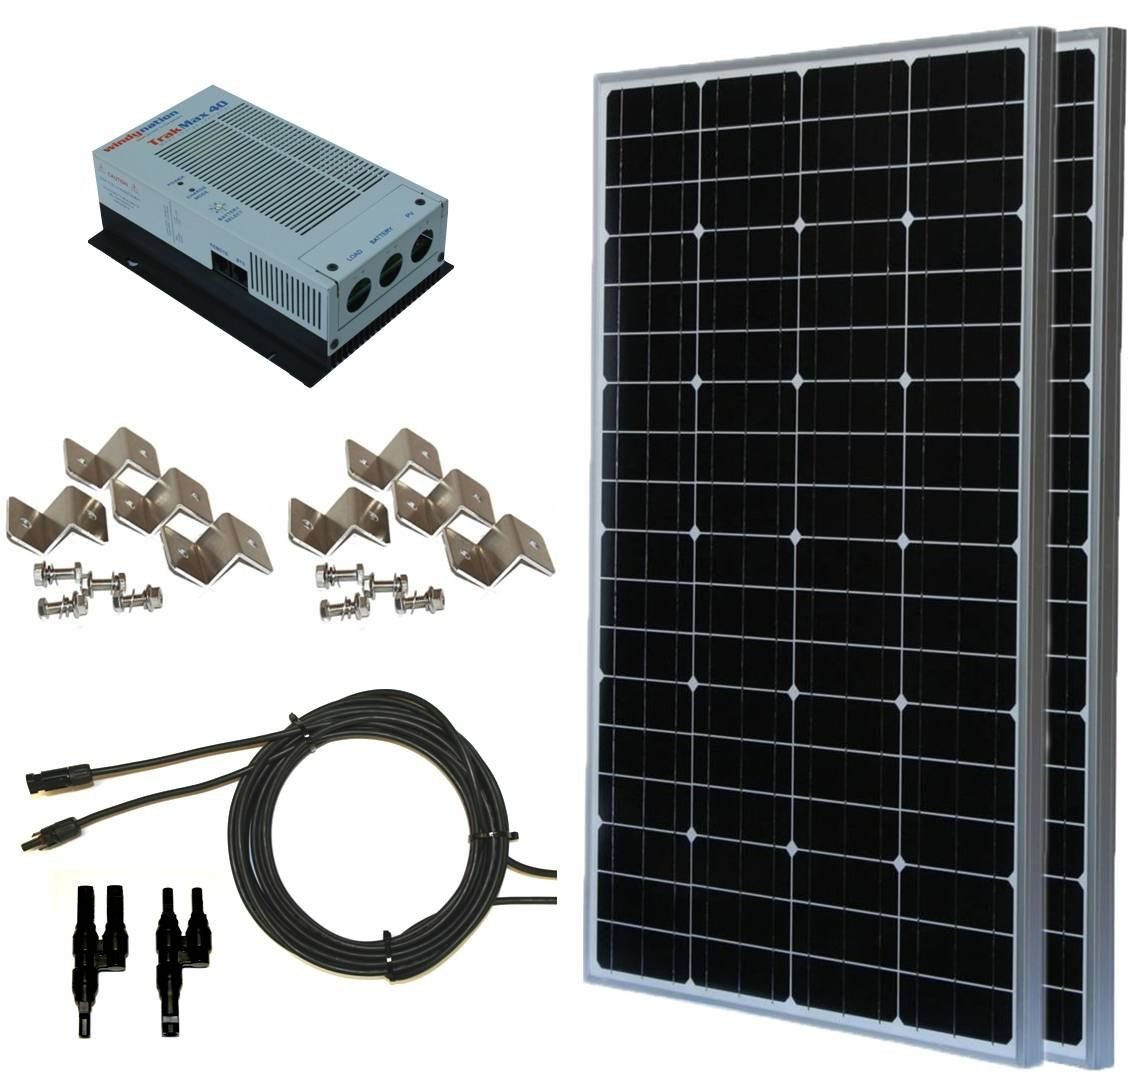 Amazon com: 200W 200 Watt, 12 Volt, 24 Volt Solar Panel +